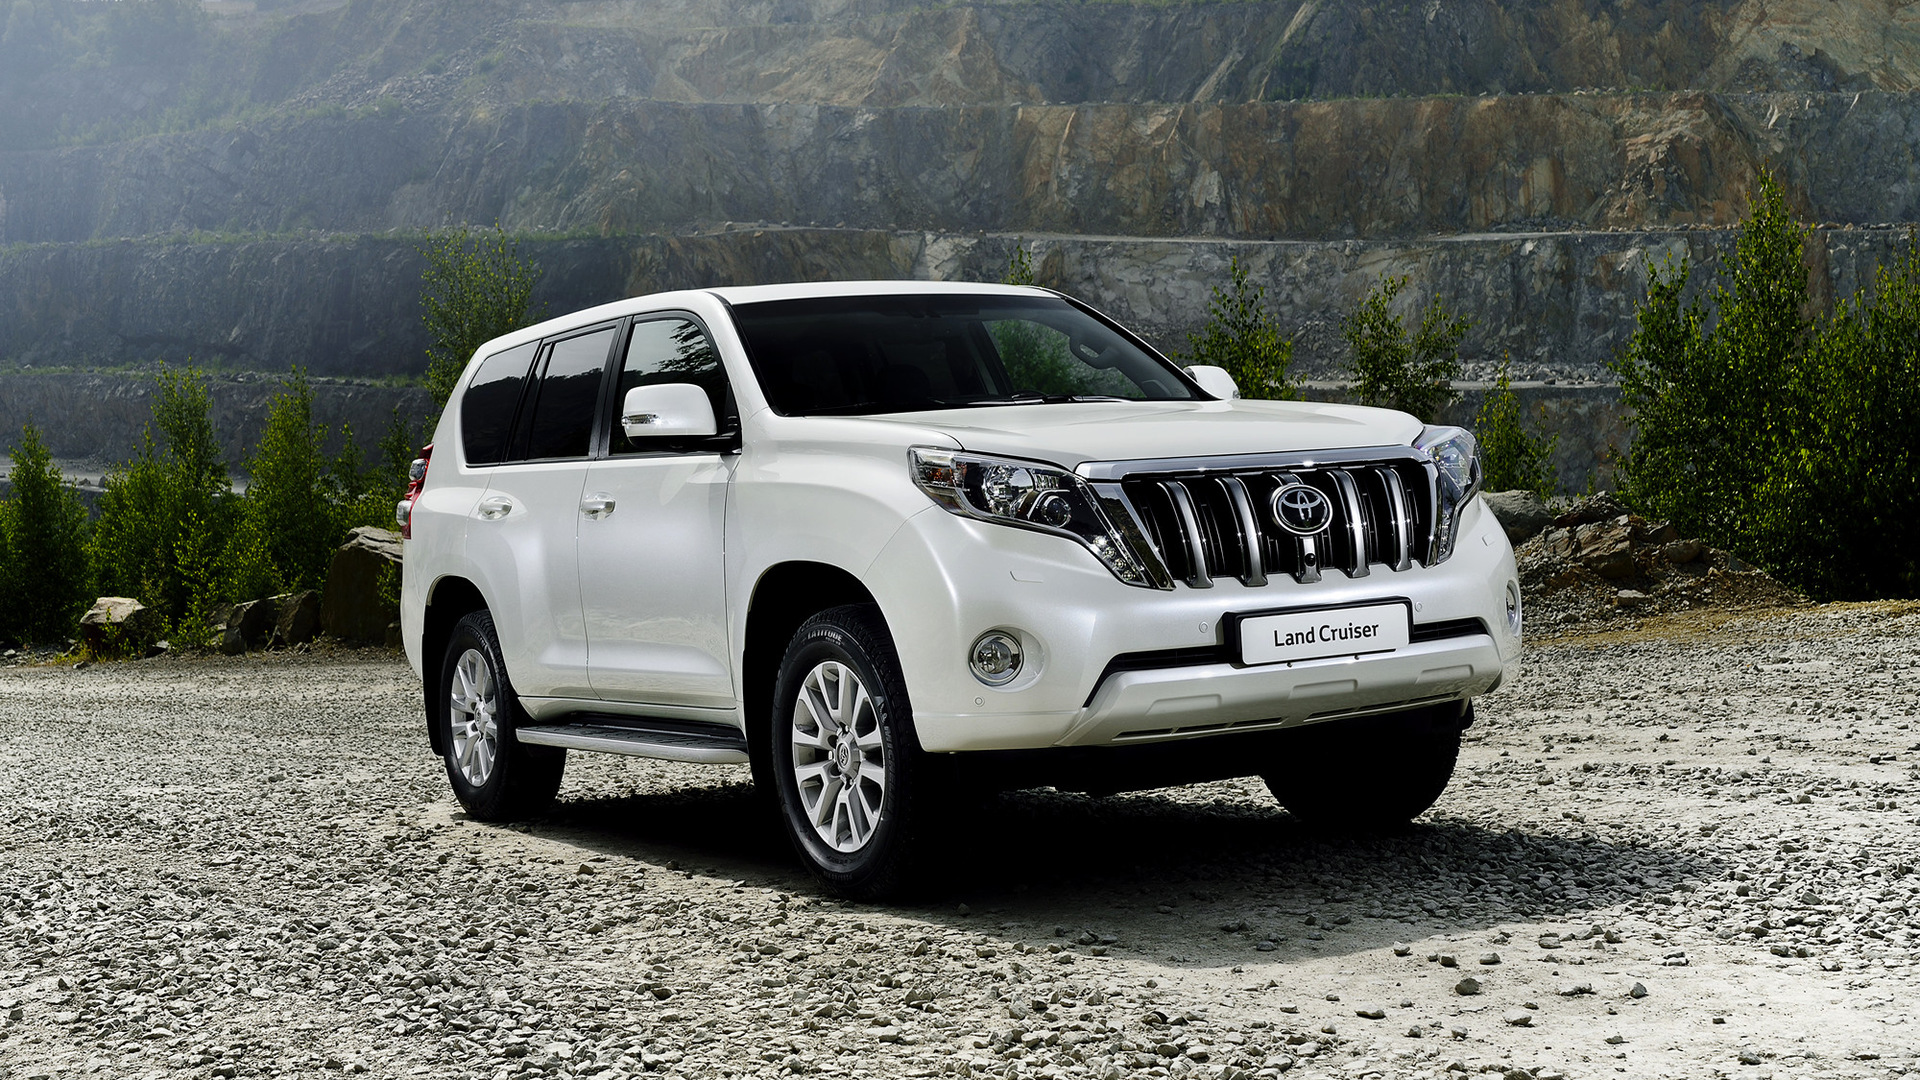 Toyota land cruiser 2013 wallpapers and hd images car - Land cruiser hd wallpaper ...